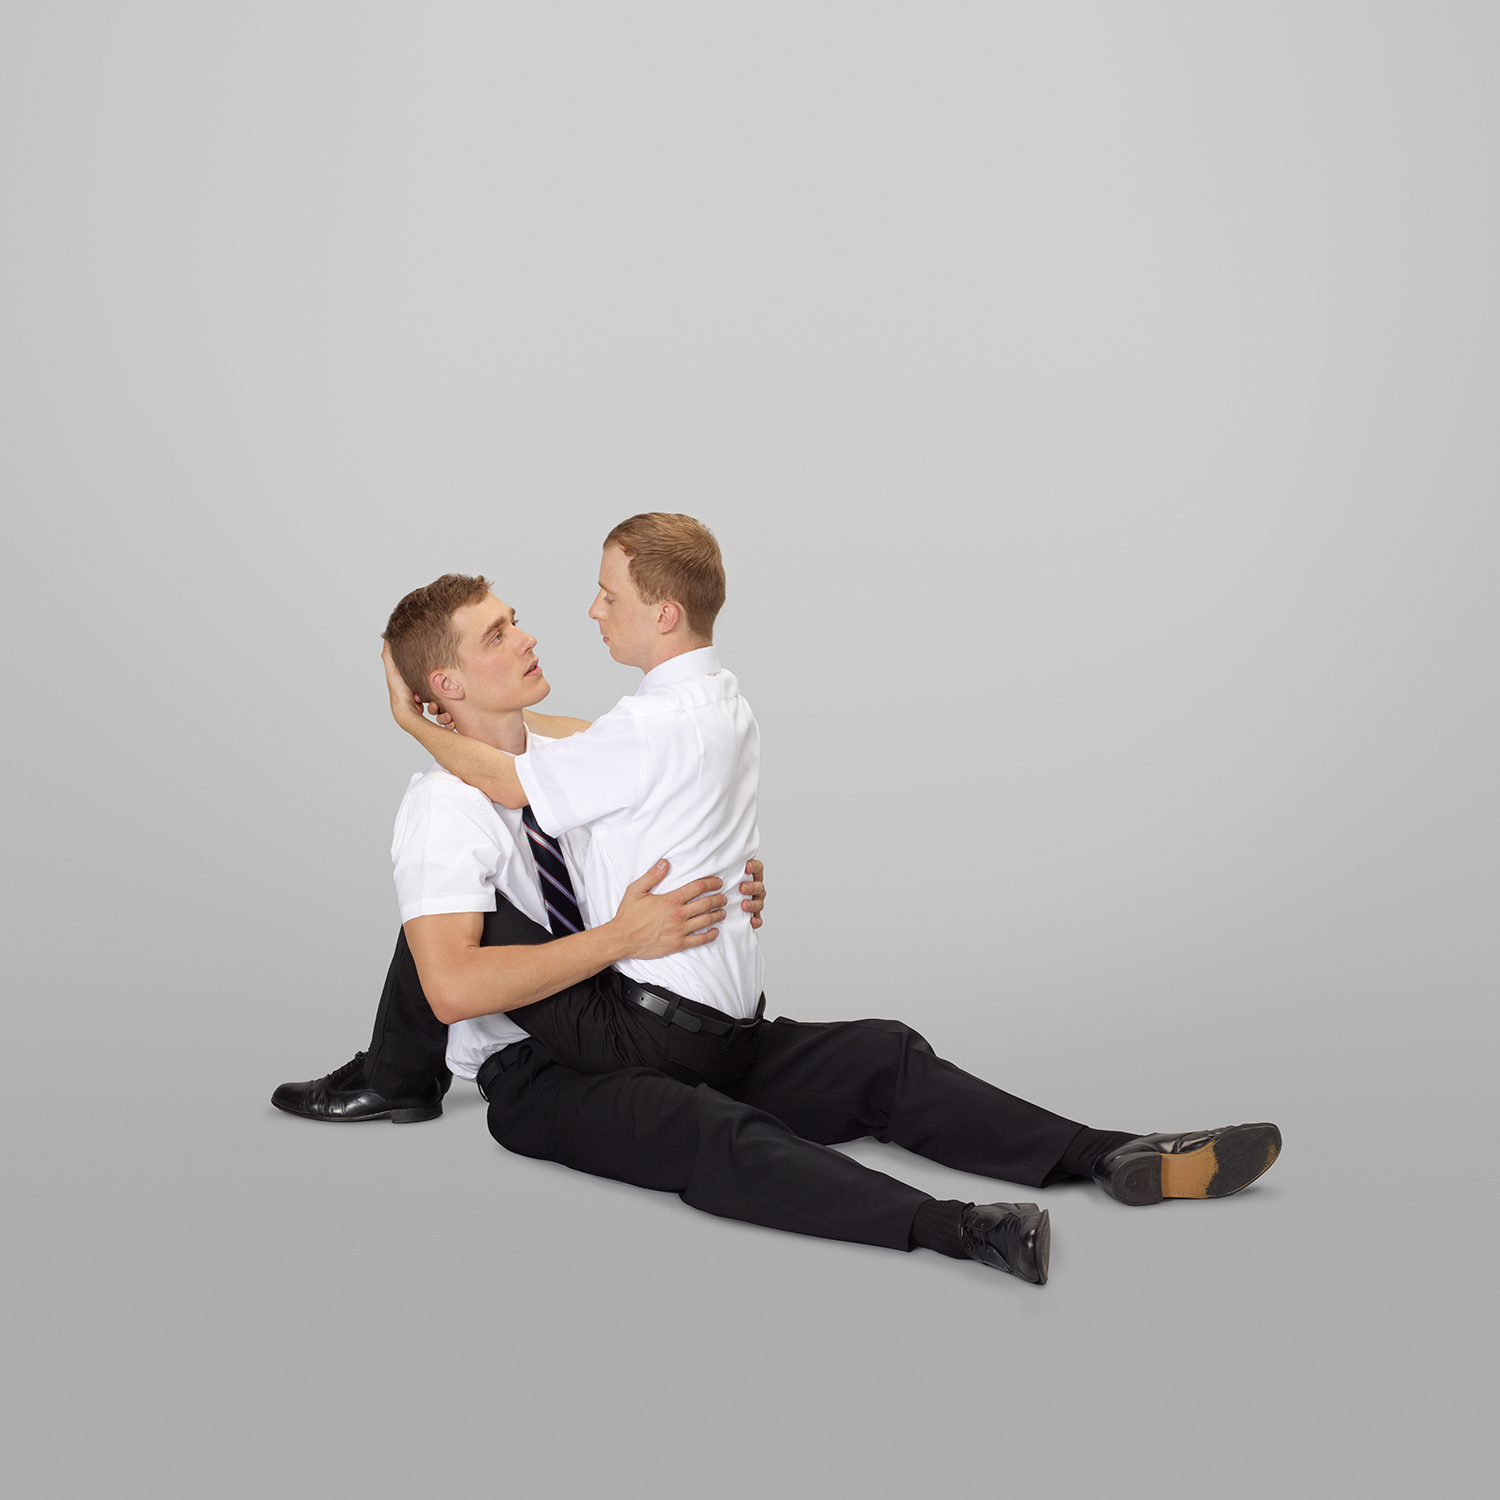 Classical missionary position photo